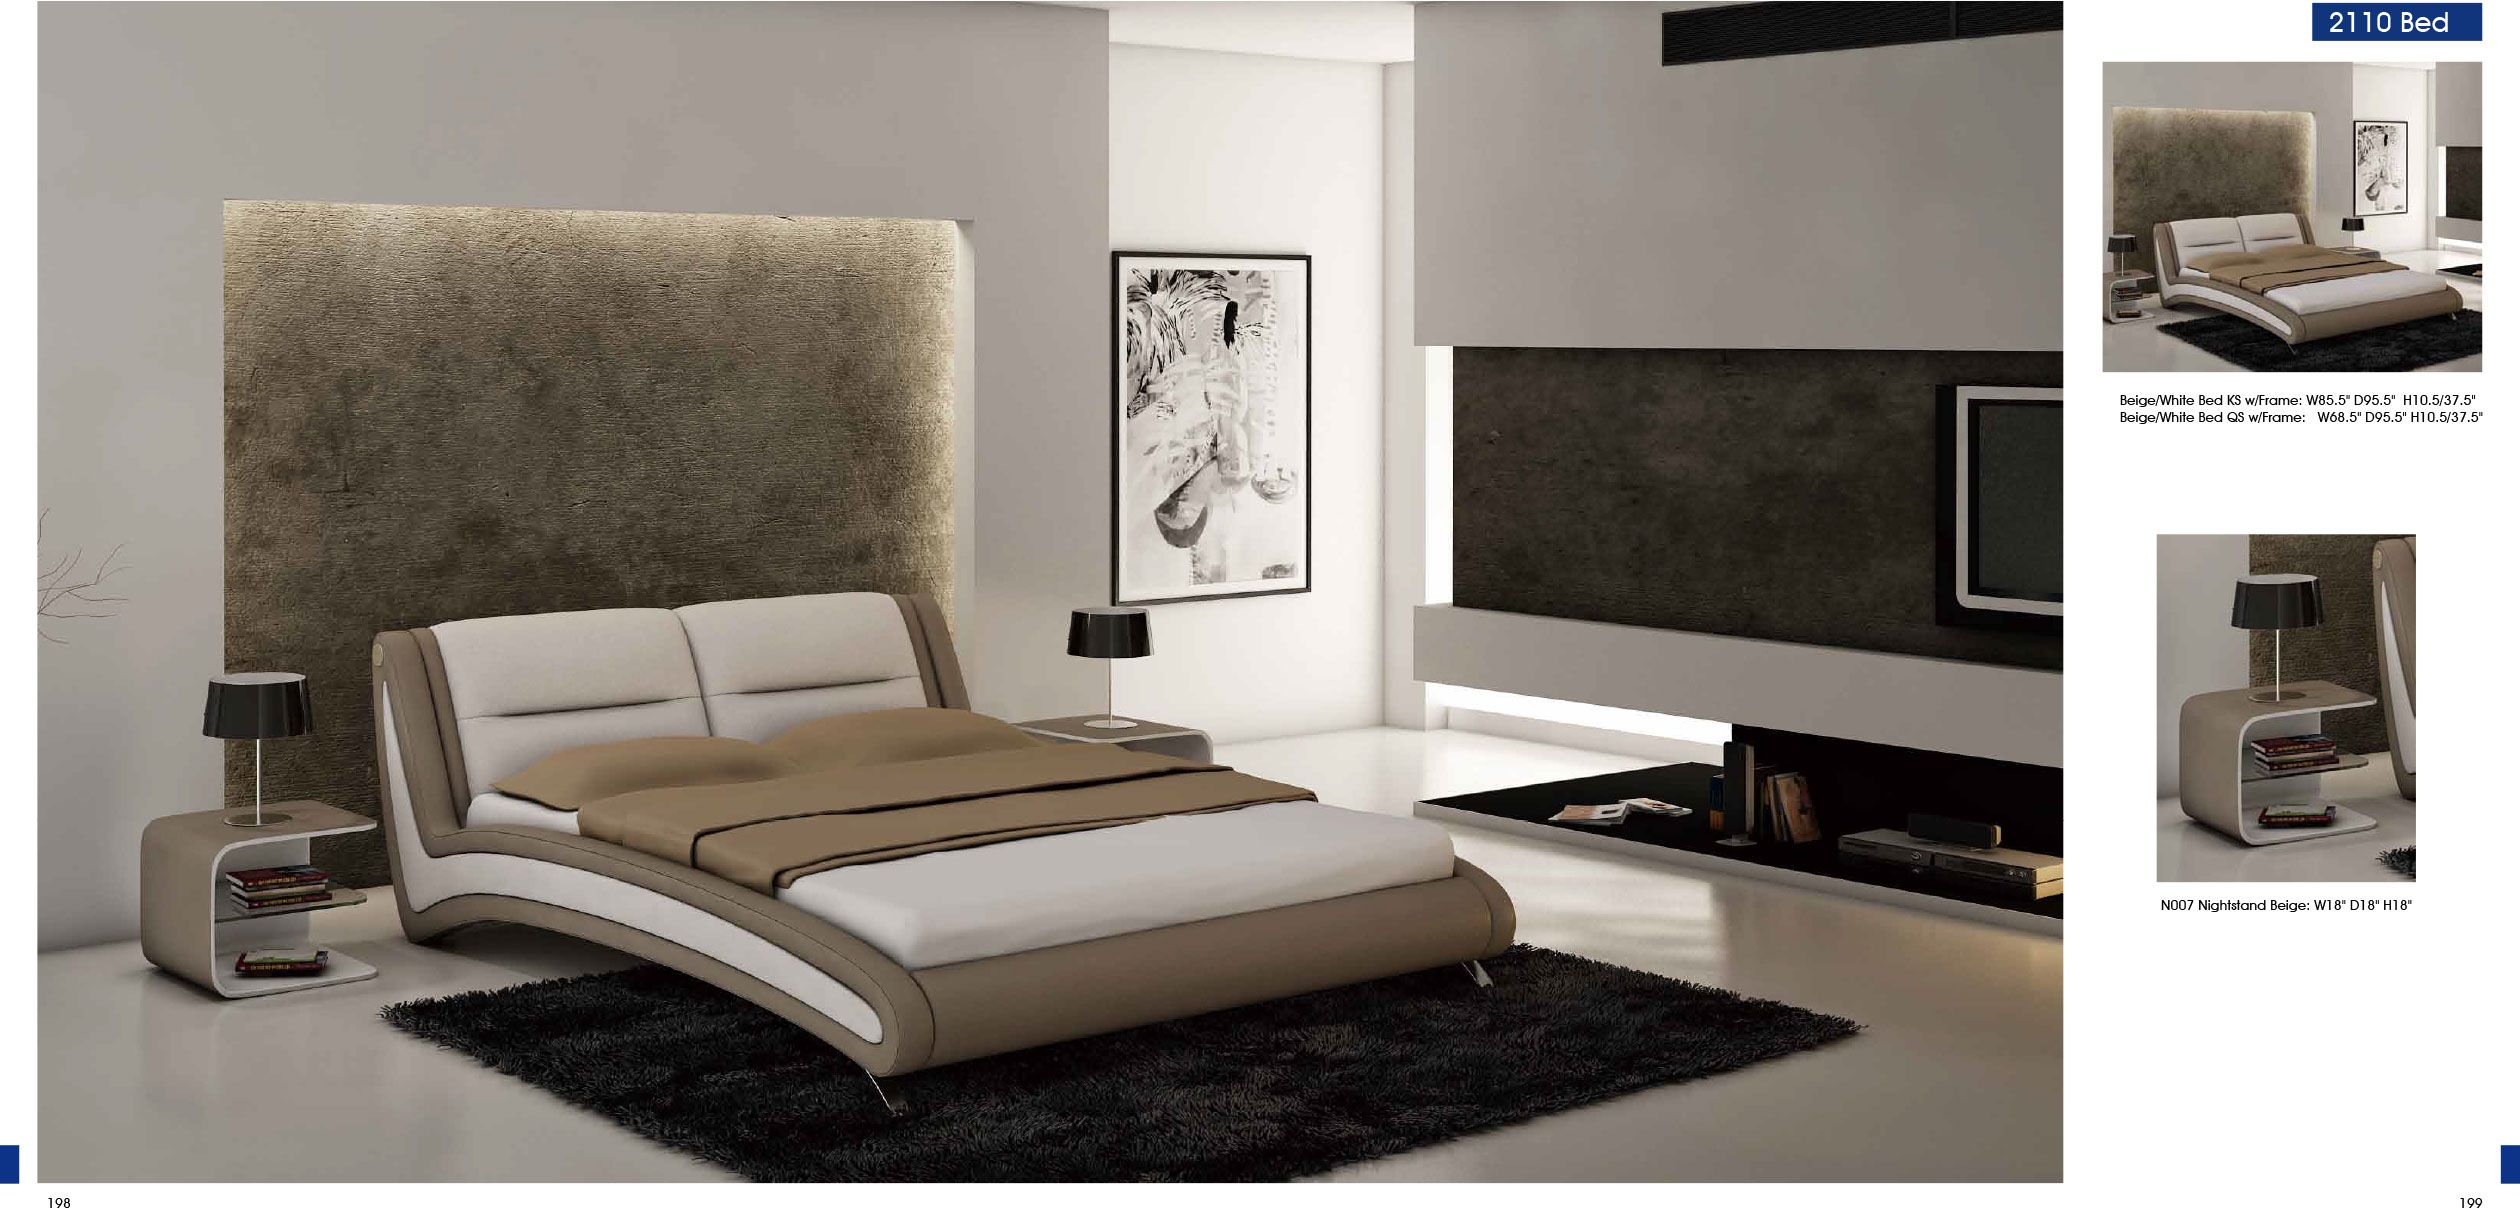 Bedroom Furniture Bedroom Furniture Modern Bedrooms 2110 Beige White Bed